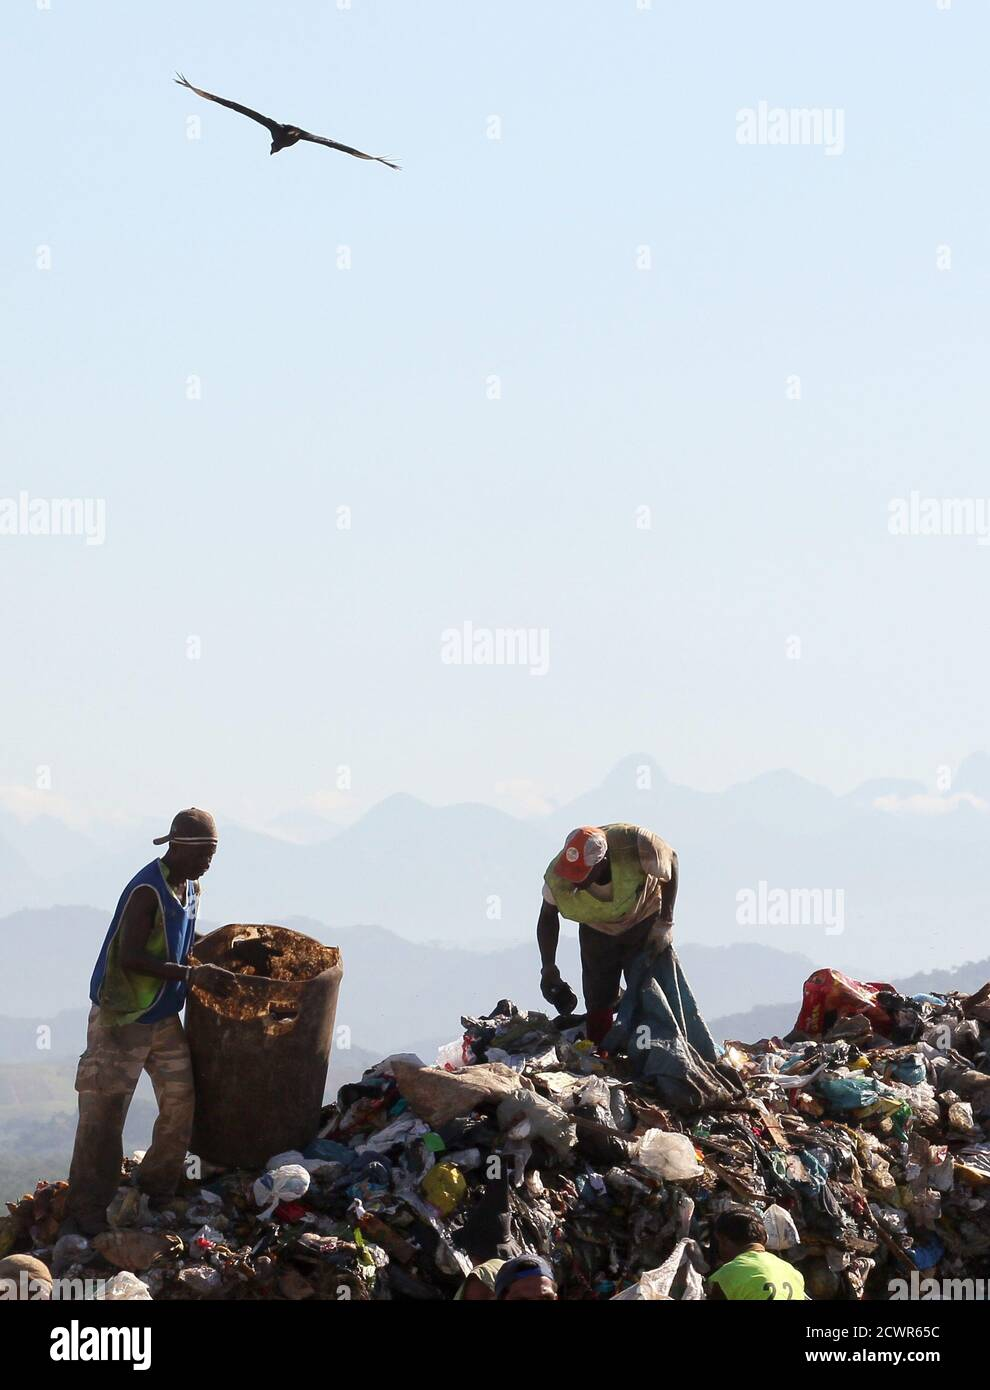 """Men collect recyclable materials from Jardim Gramacho landfill, one of the world's largest garbage dumps, where the documentary """"Lixo Extraordinario"""" (Waste Land) was filmed, in Rio de Janeiro January 28, 2011. Waste Land follows artist Vik Muniz on a journey from his home in Brooklyn to his native Brazil, where he met a band of garbage pickers in the world's largest garbage dump, Jardim Gramacho. Waste Land has been nominated for an Oscar in the category of Best Documentary. REUTERS/Sergio Moraes (BRAZIL - Tags: ENVIRONMENT SOCIETY) Stock Photo"""